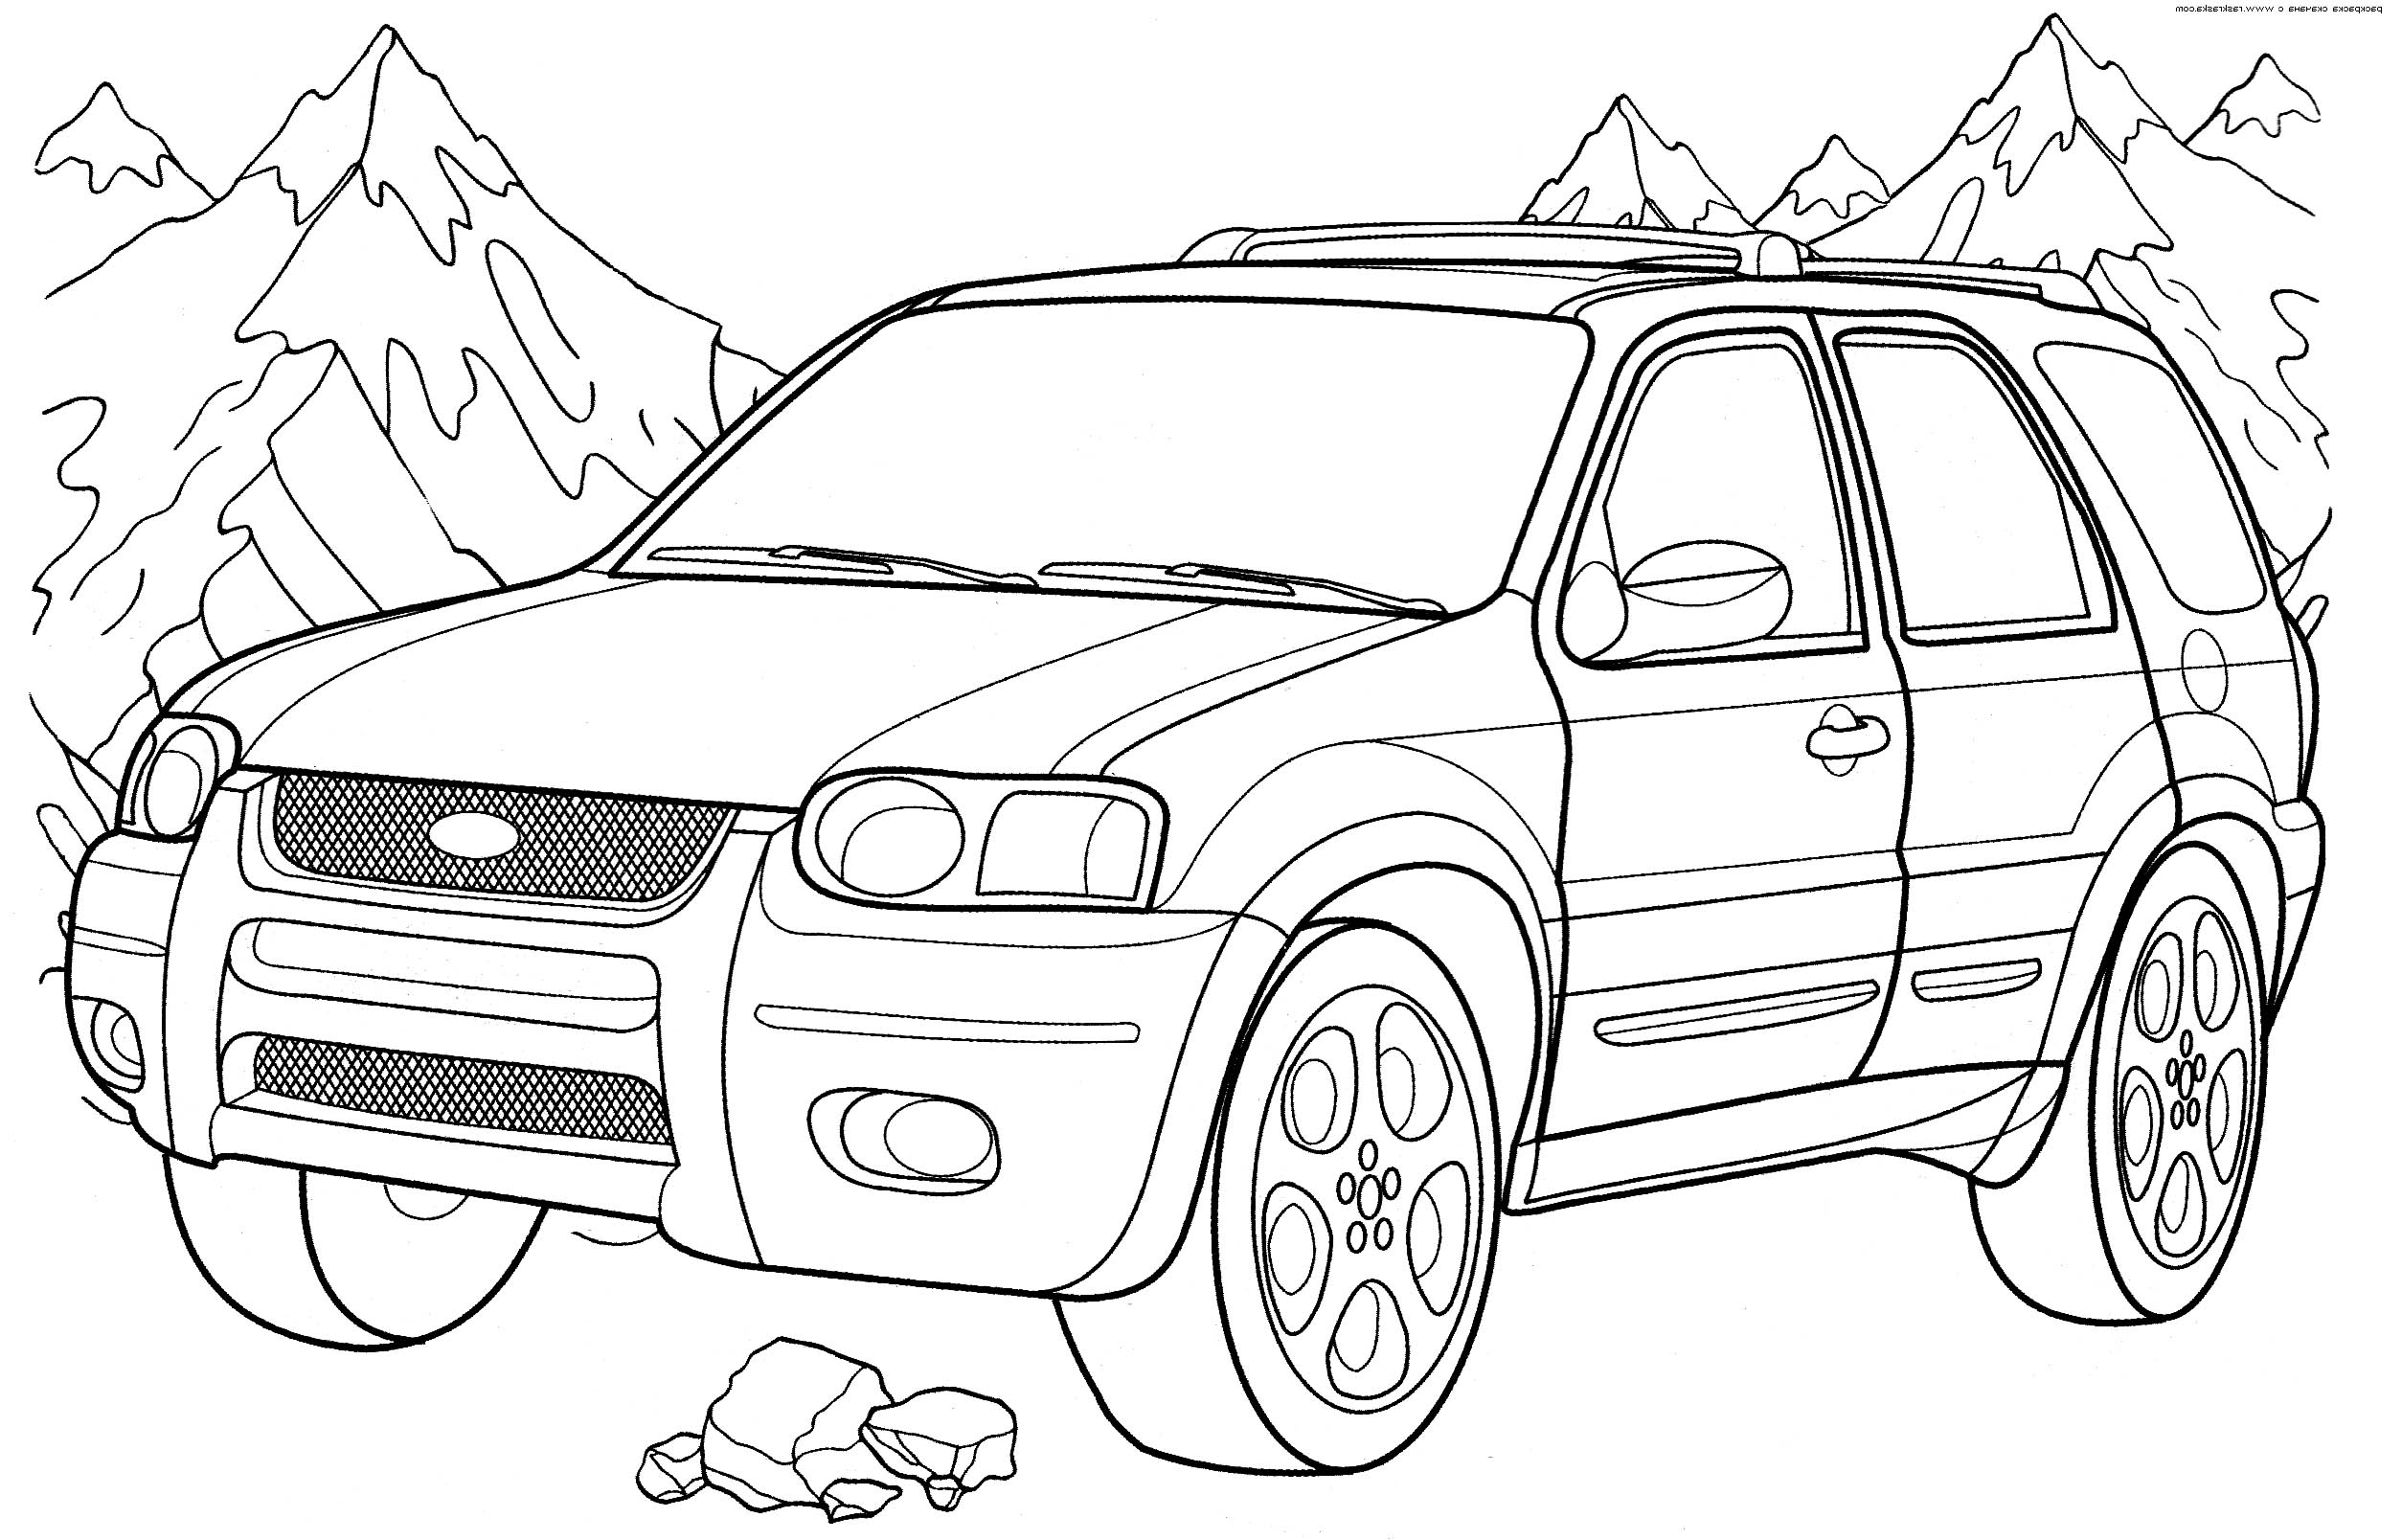 free printable car coloring pages free easy to print race car coloring pages tulamama pages printable car free coloring